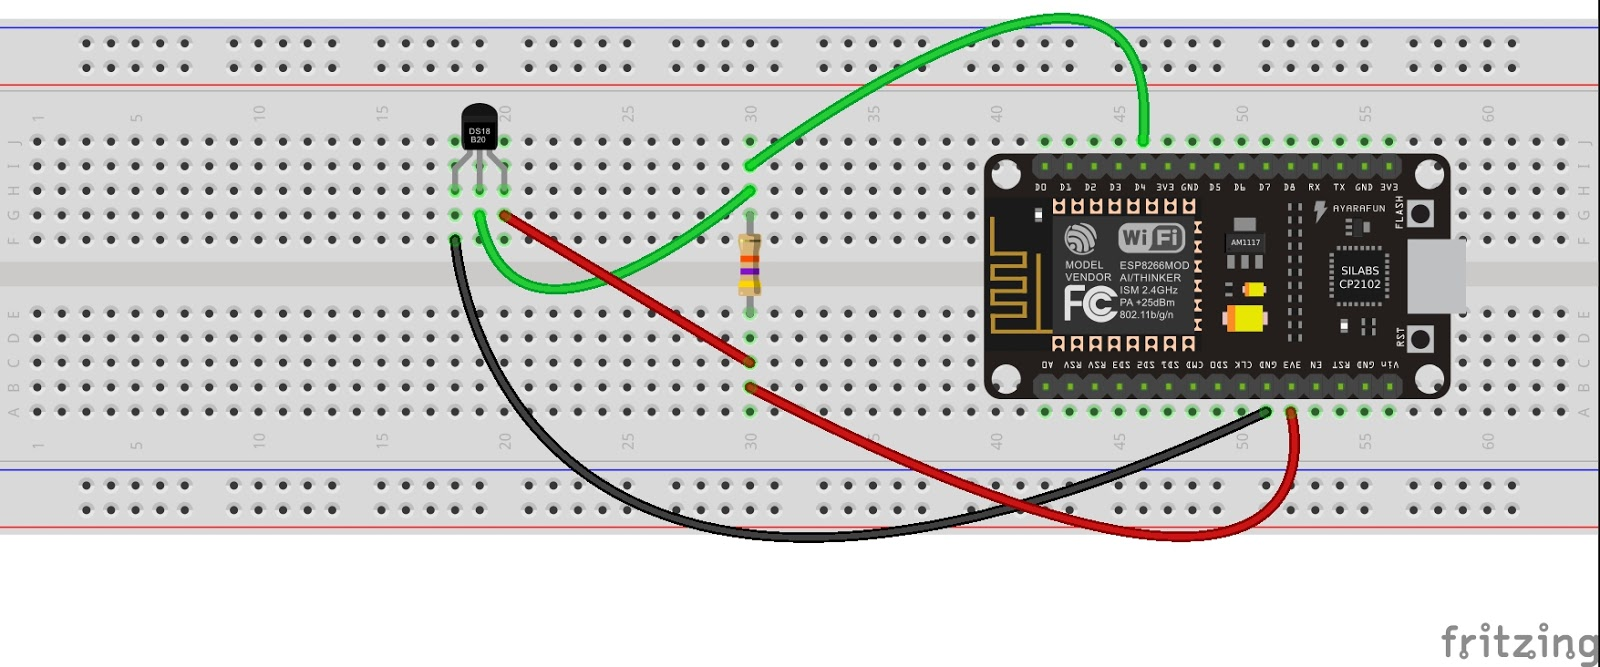 Fablabz February 2018 The Electronic Thermometer Circuit Diagram For Blind Electrical Step 3 Upload Ds18b20 Temperature Sensor Data To Thingspeak From Esp8266 Nodemcu